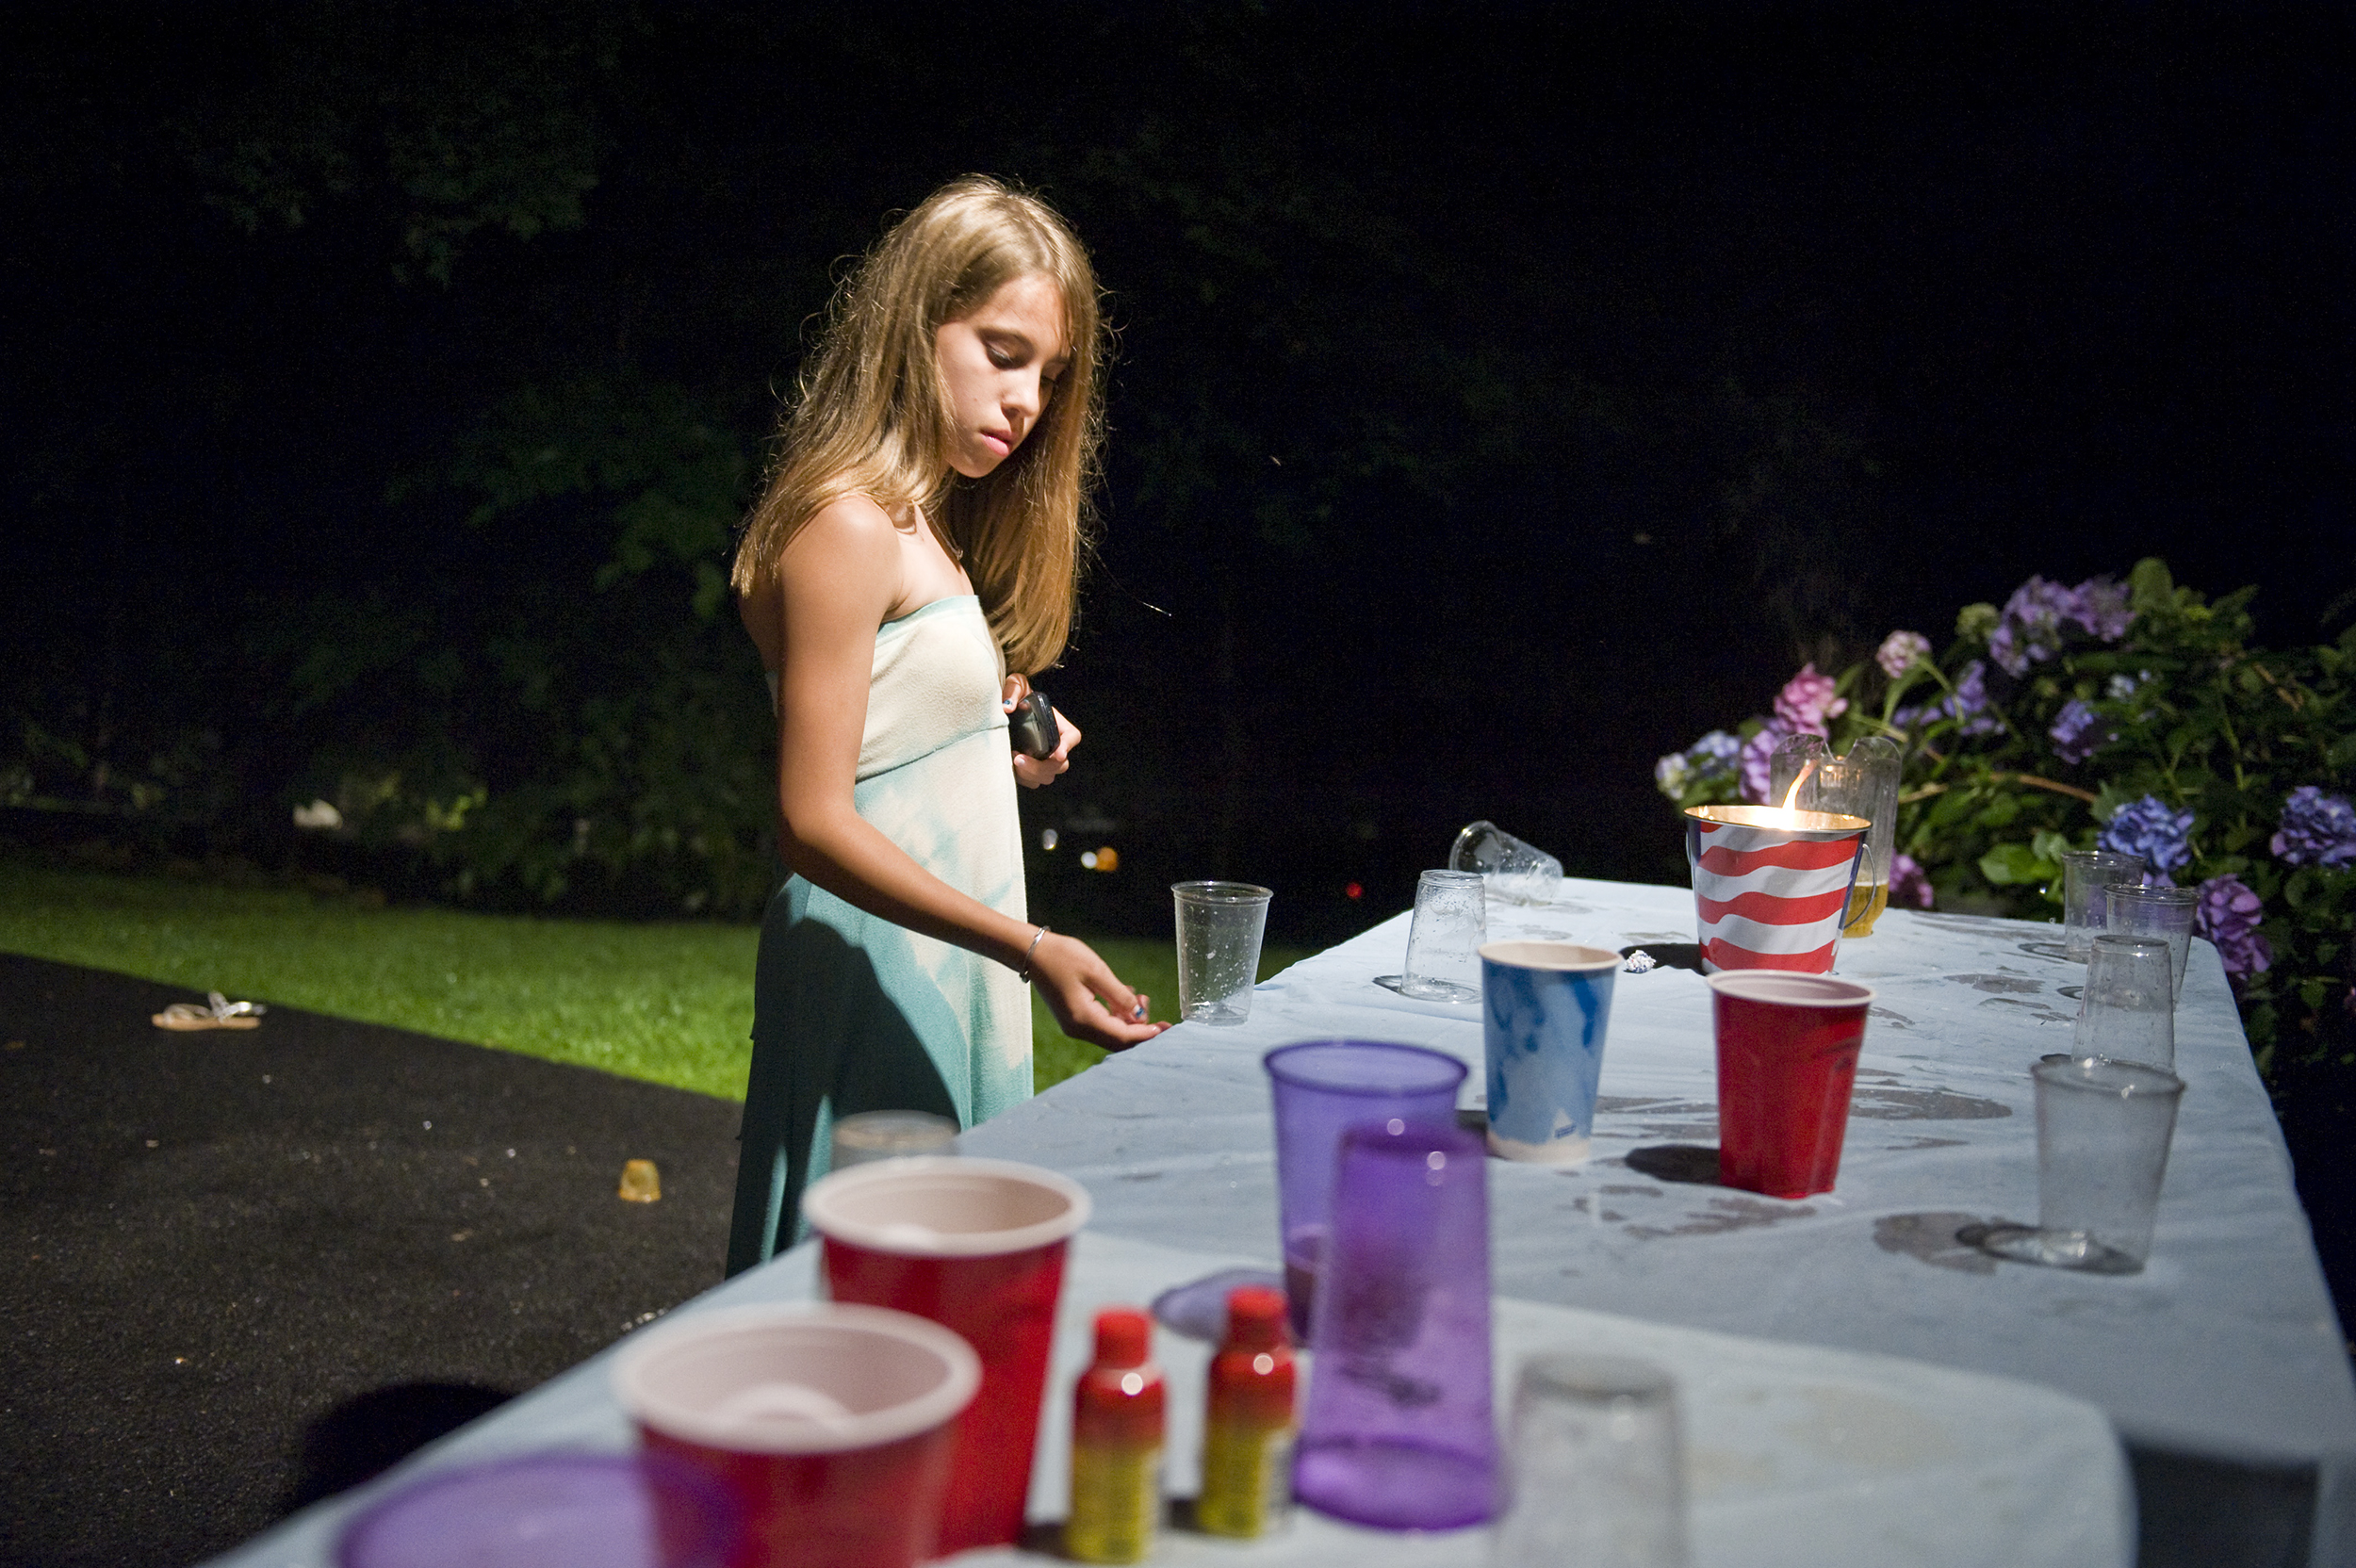 A 13-year-old girl mimics the drinking game played by adults at a engagement party. Chester, New Jersey, 2011.